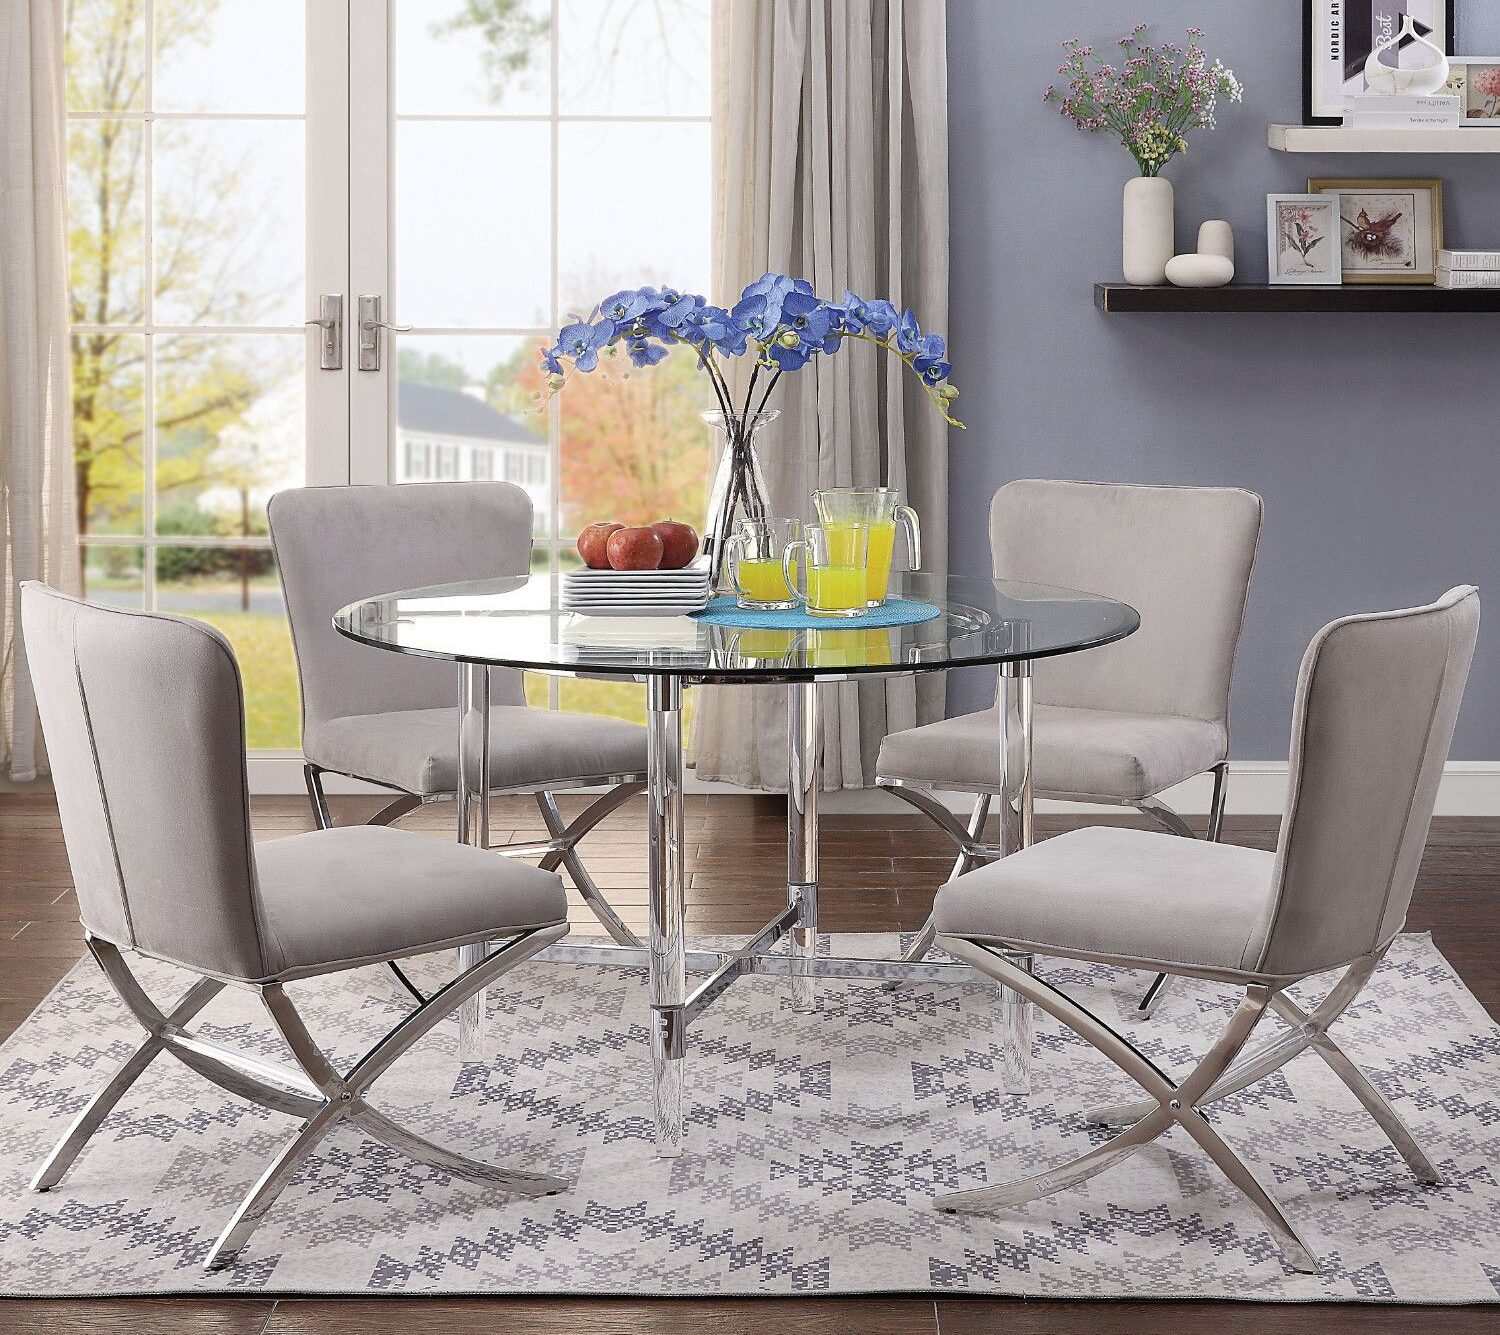 Daire 48 Round Dining Table in Chrome, Acrylic & Clear Glass by Acme Furniture [Source: https://pin.it/4CffQbS]